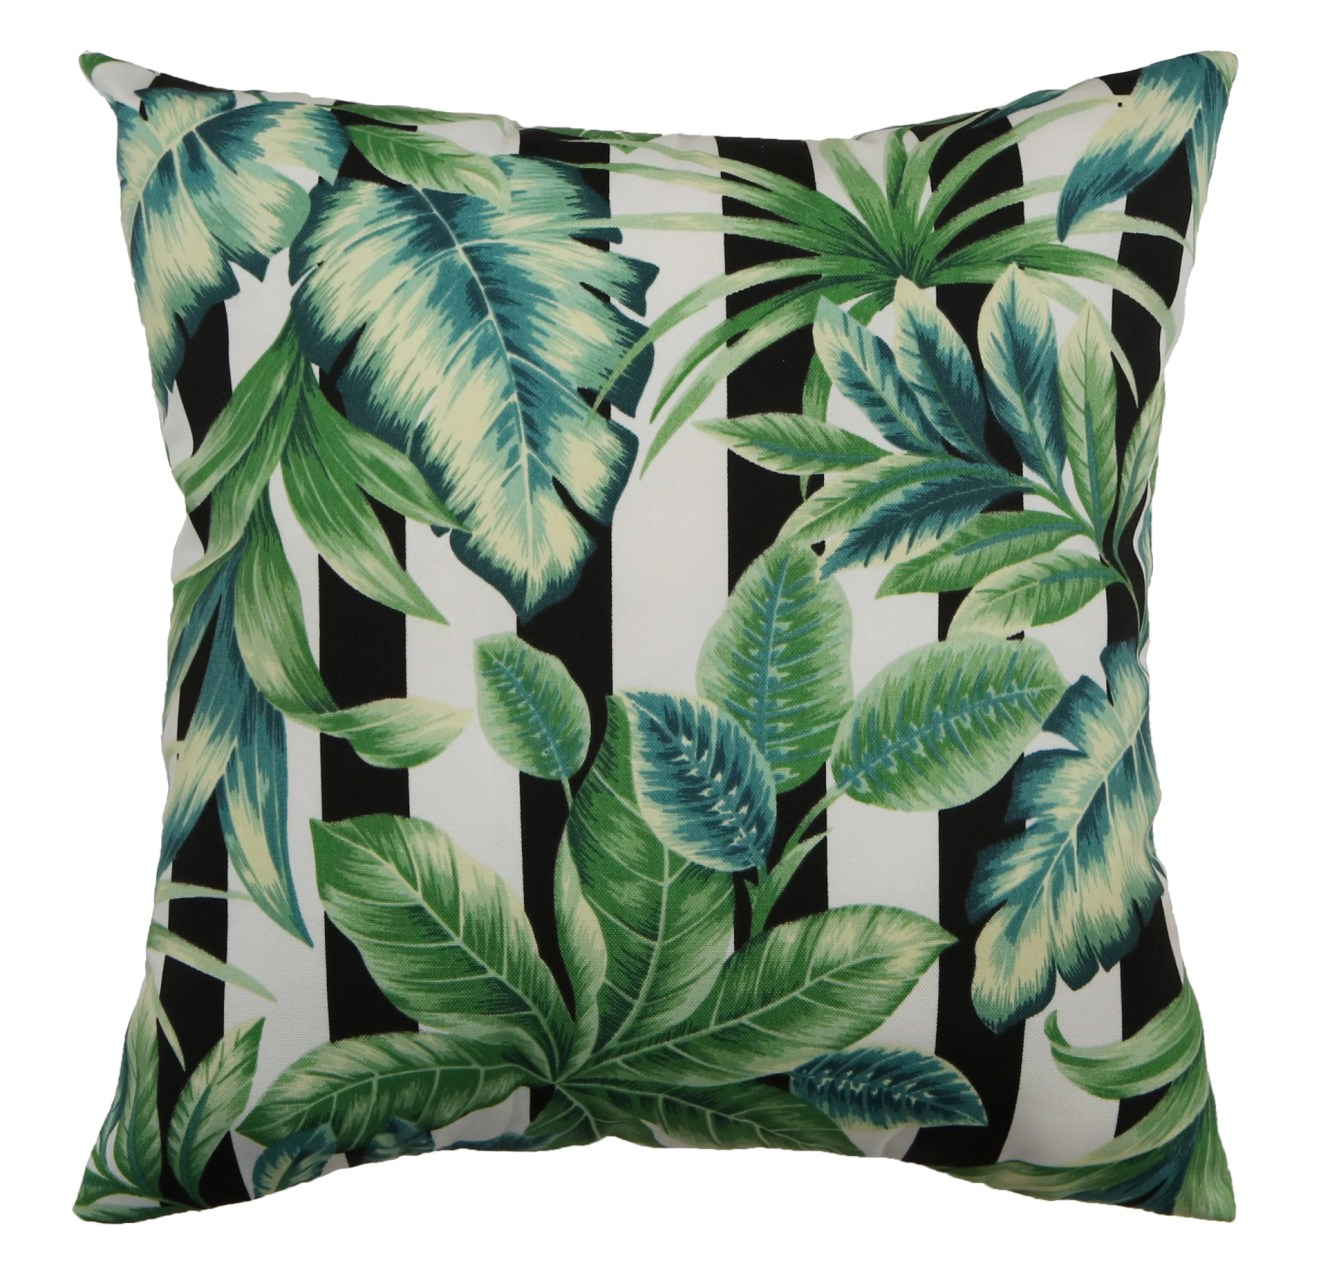 Outdoor Accent Pillow-palm Cabana Stripe 18x18 Living Spaces